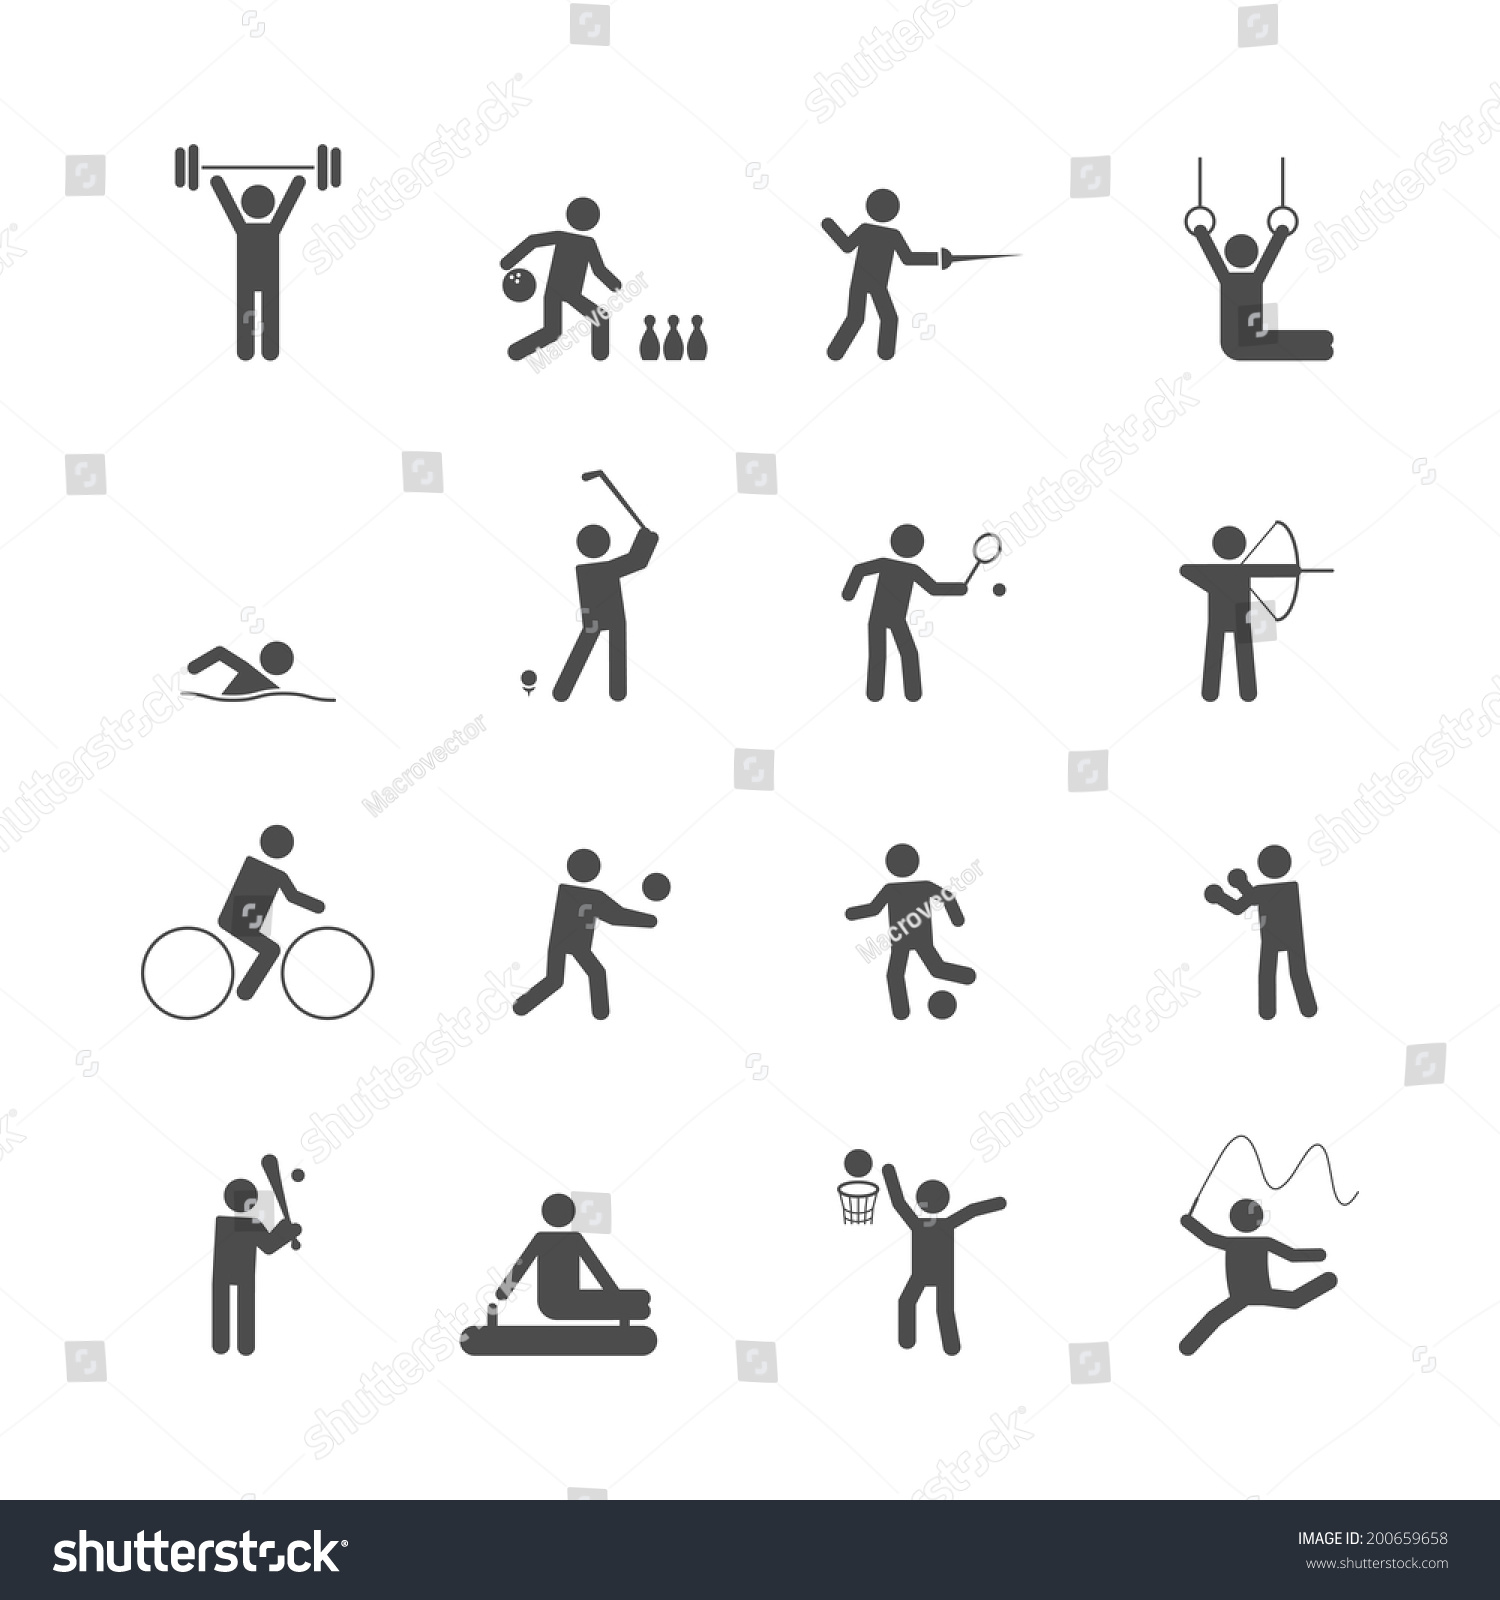 Decorative Swimming Boxing Weihgtlifting Sport Symbols Stock Vector